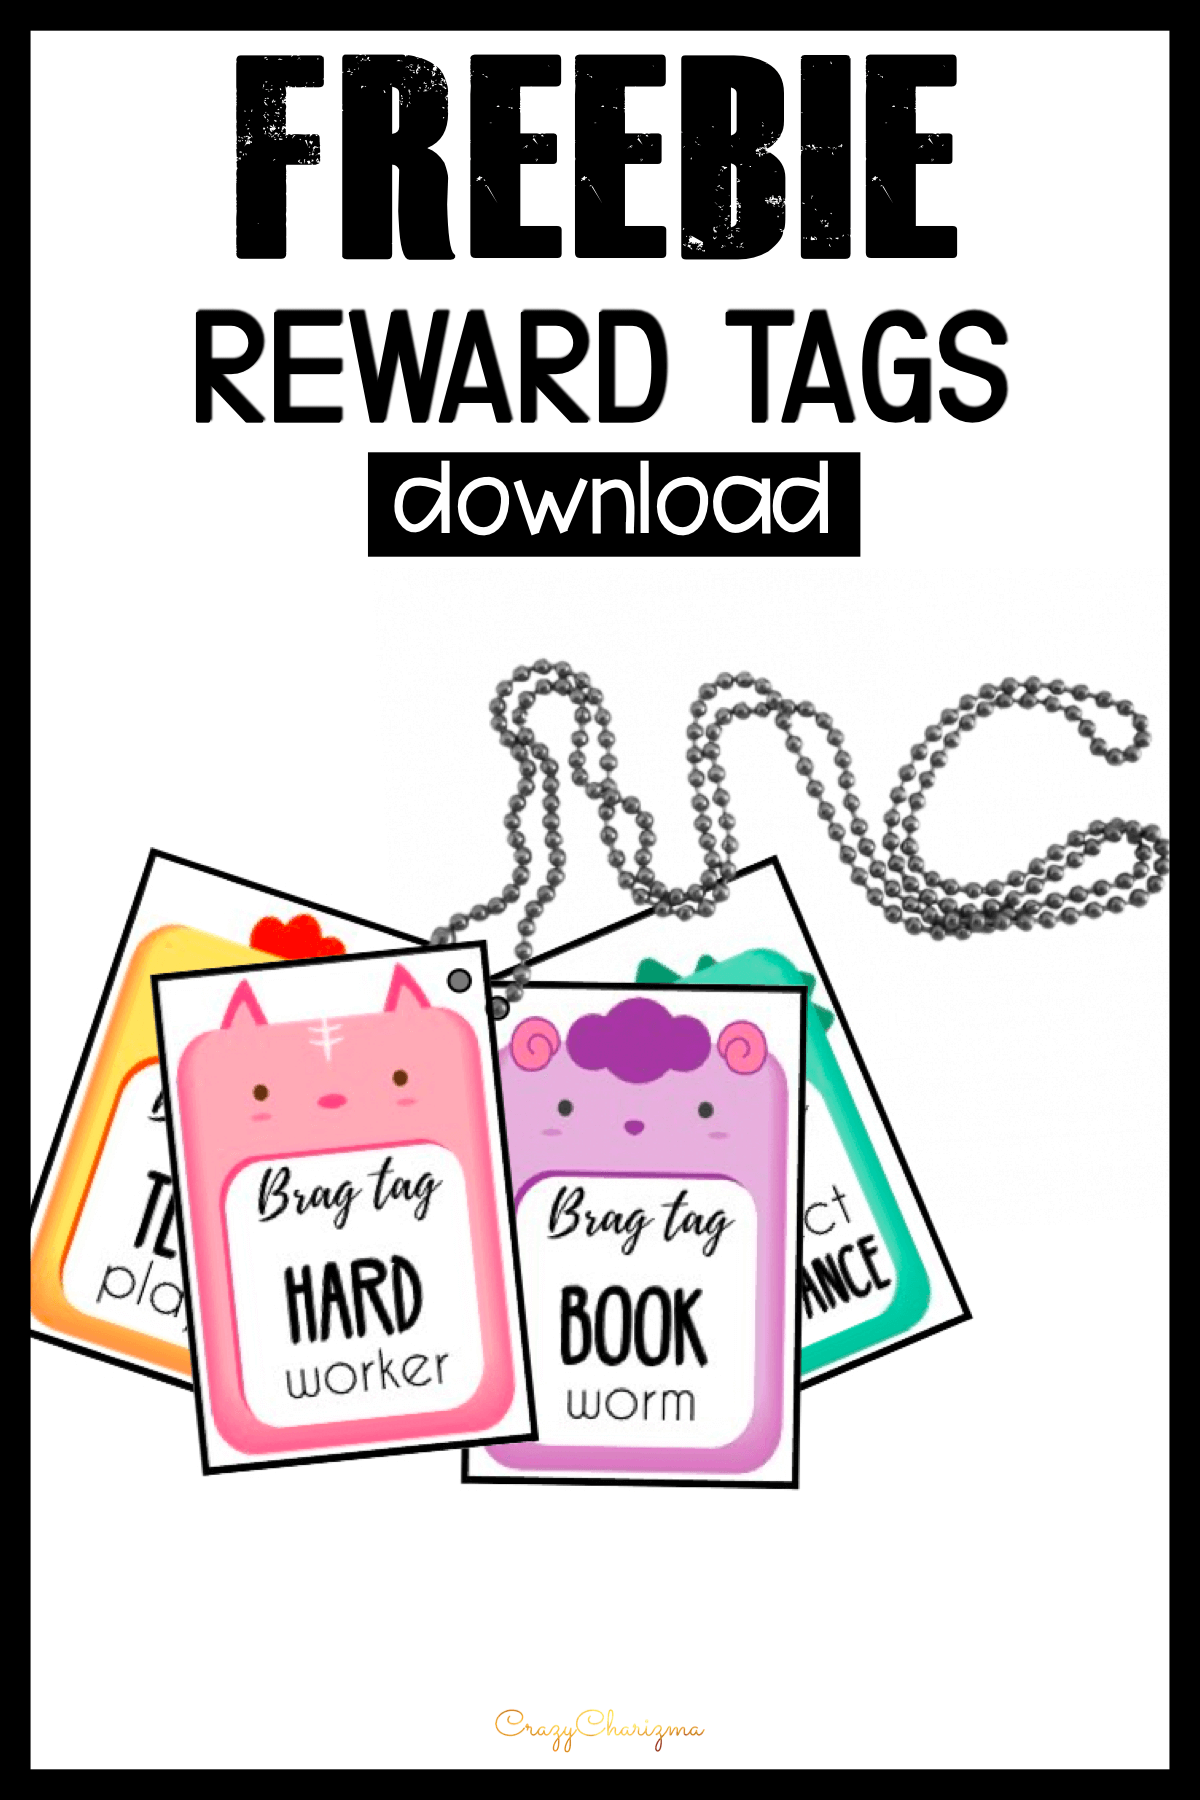 Promote and reward positive behavior with these reward tags. Available for you: ready to print brag tags - free download.